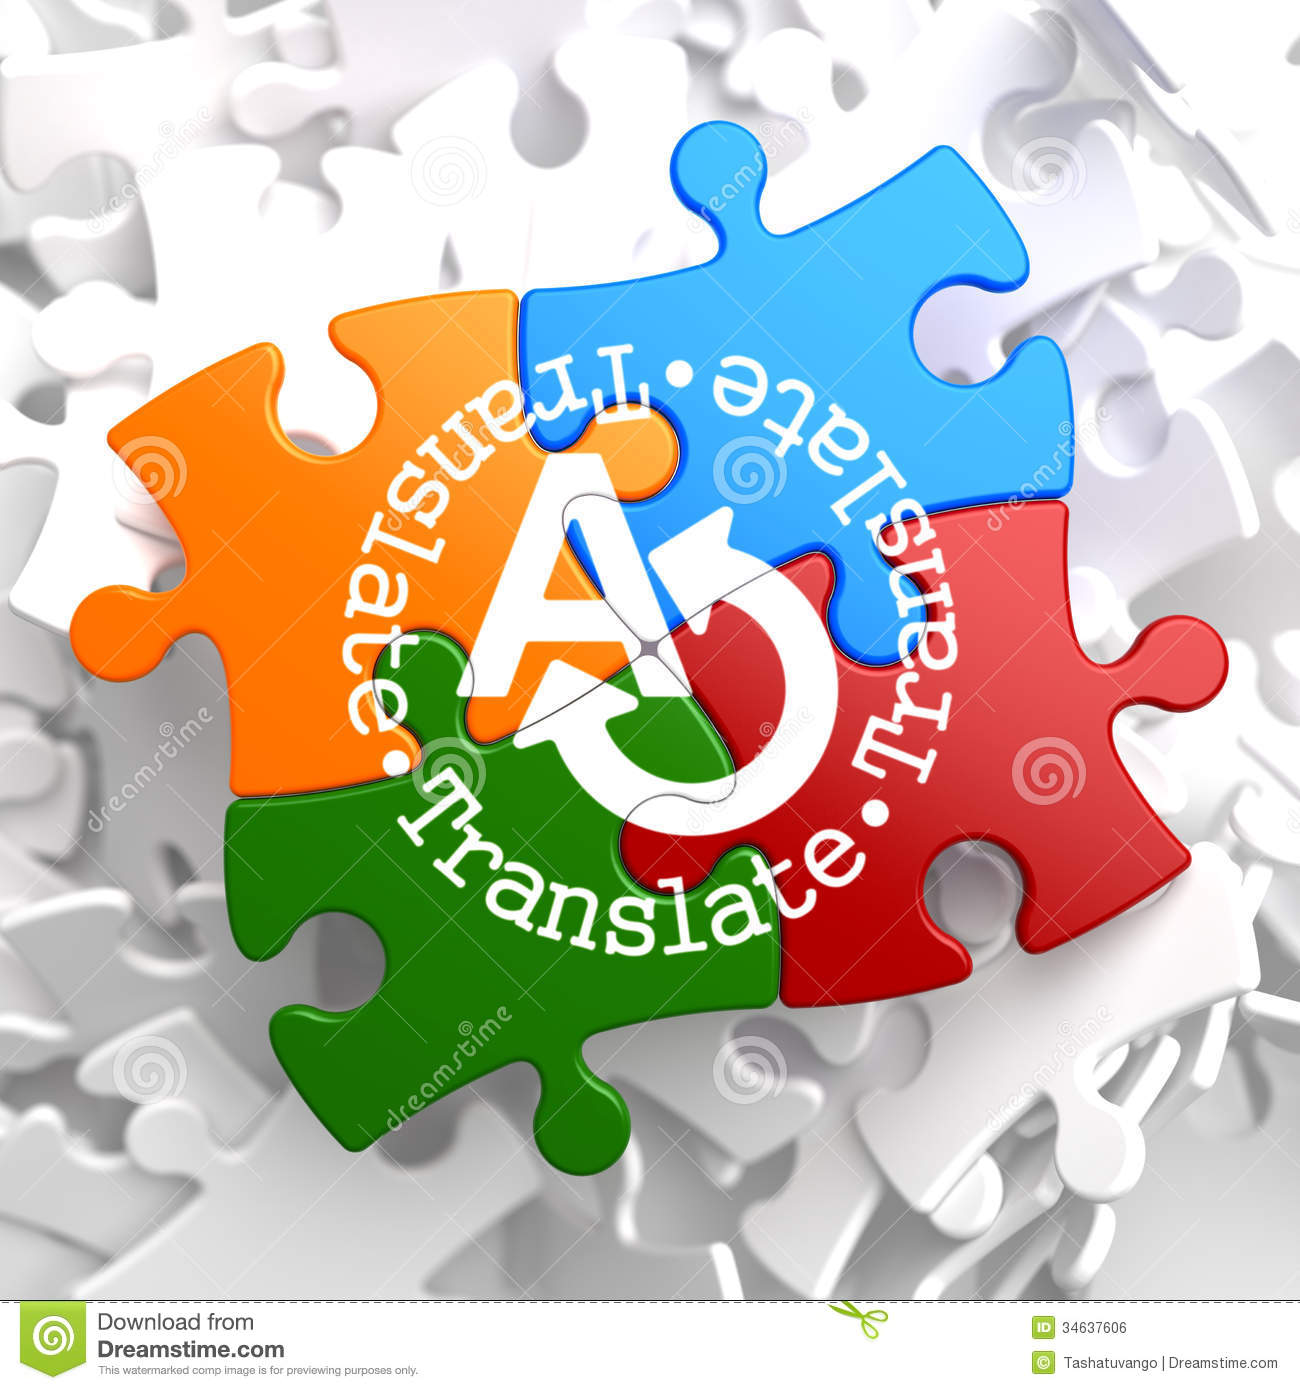 Translate - Translating Concept On Multicolor Puzzle Royalty Free Stock Image